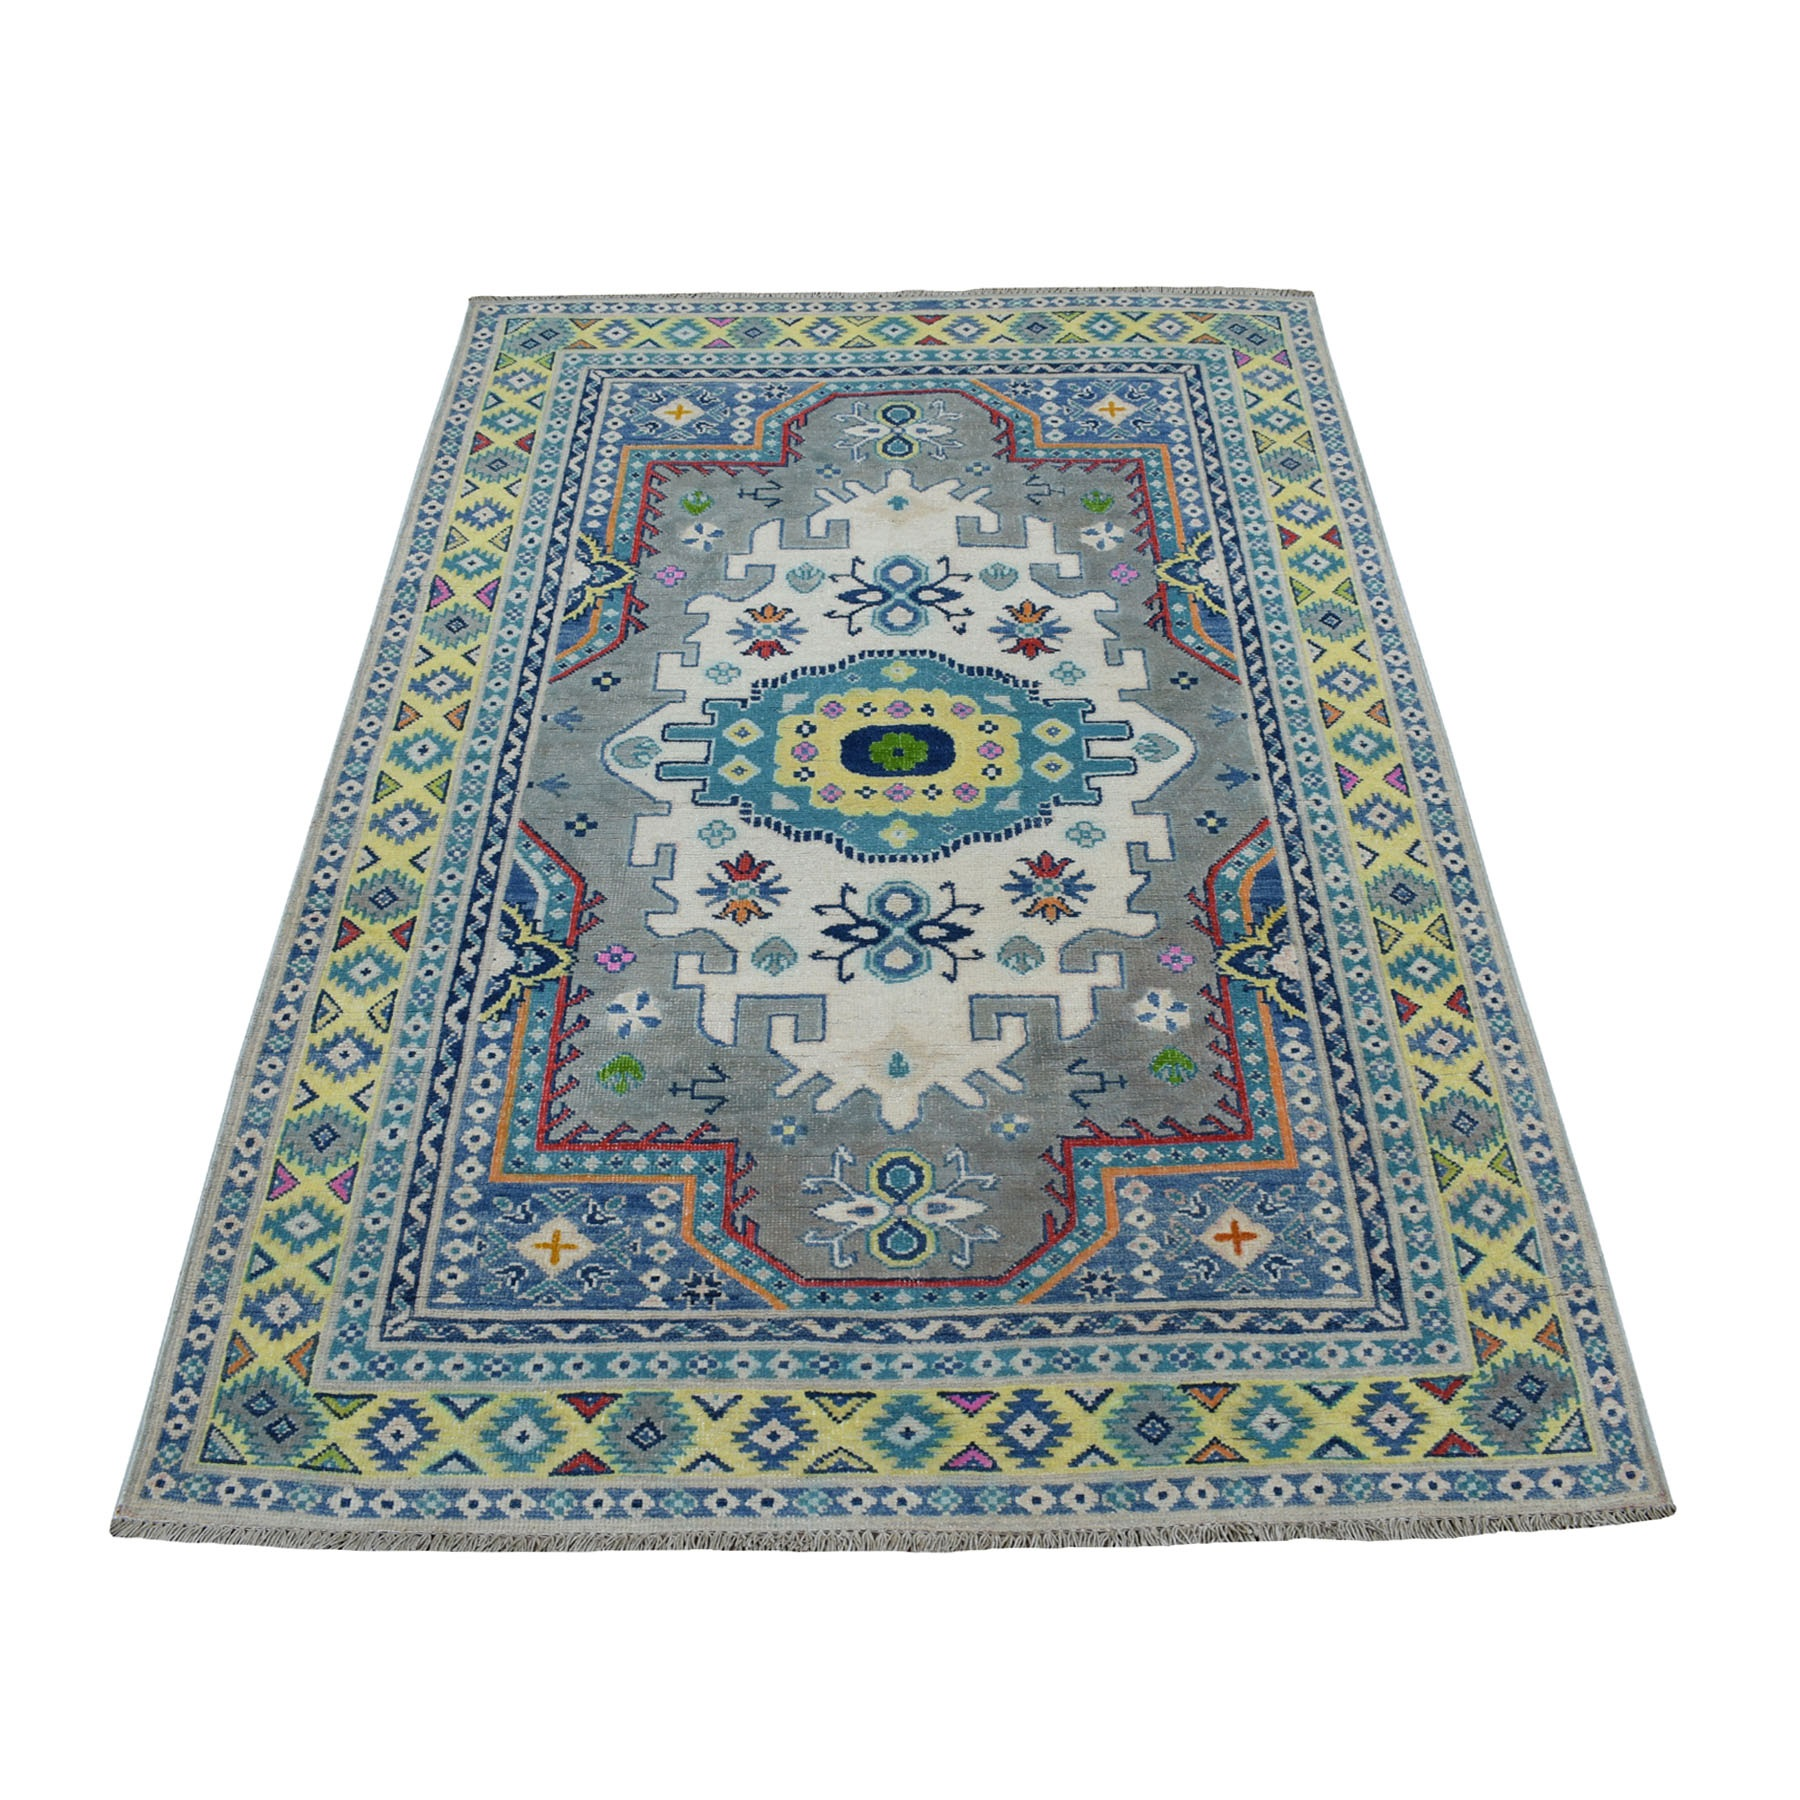 4'X6' Colorful Gray Fusion Kazak Pure Wool Geometric Design Hand Knotted Oriental Rug moaecea9